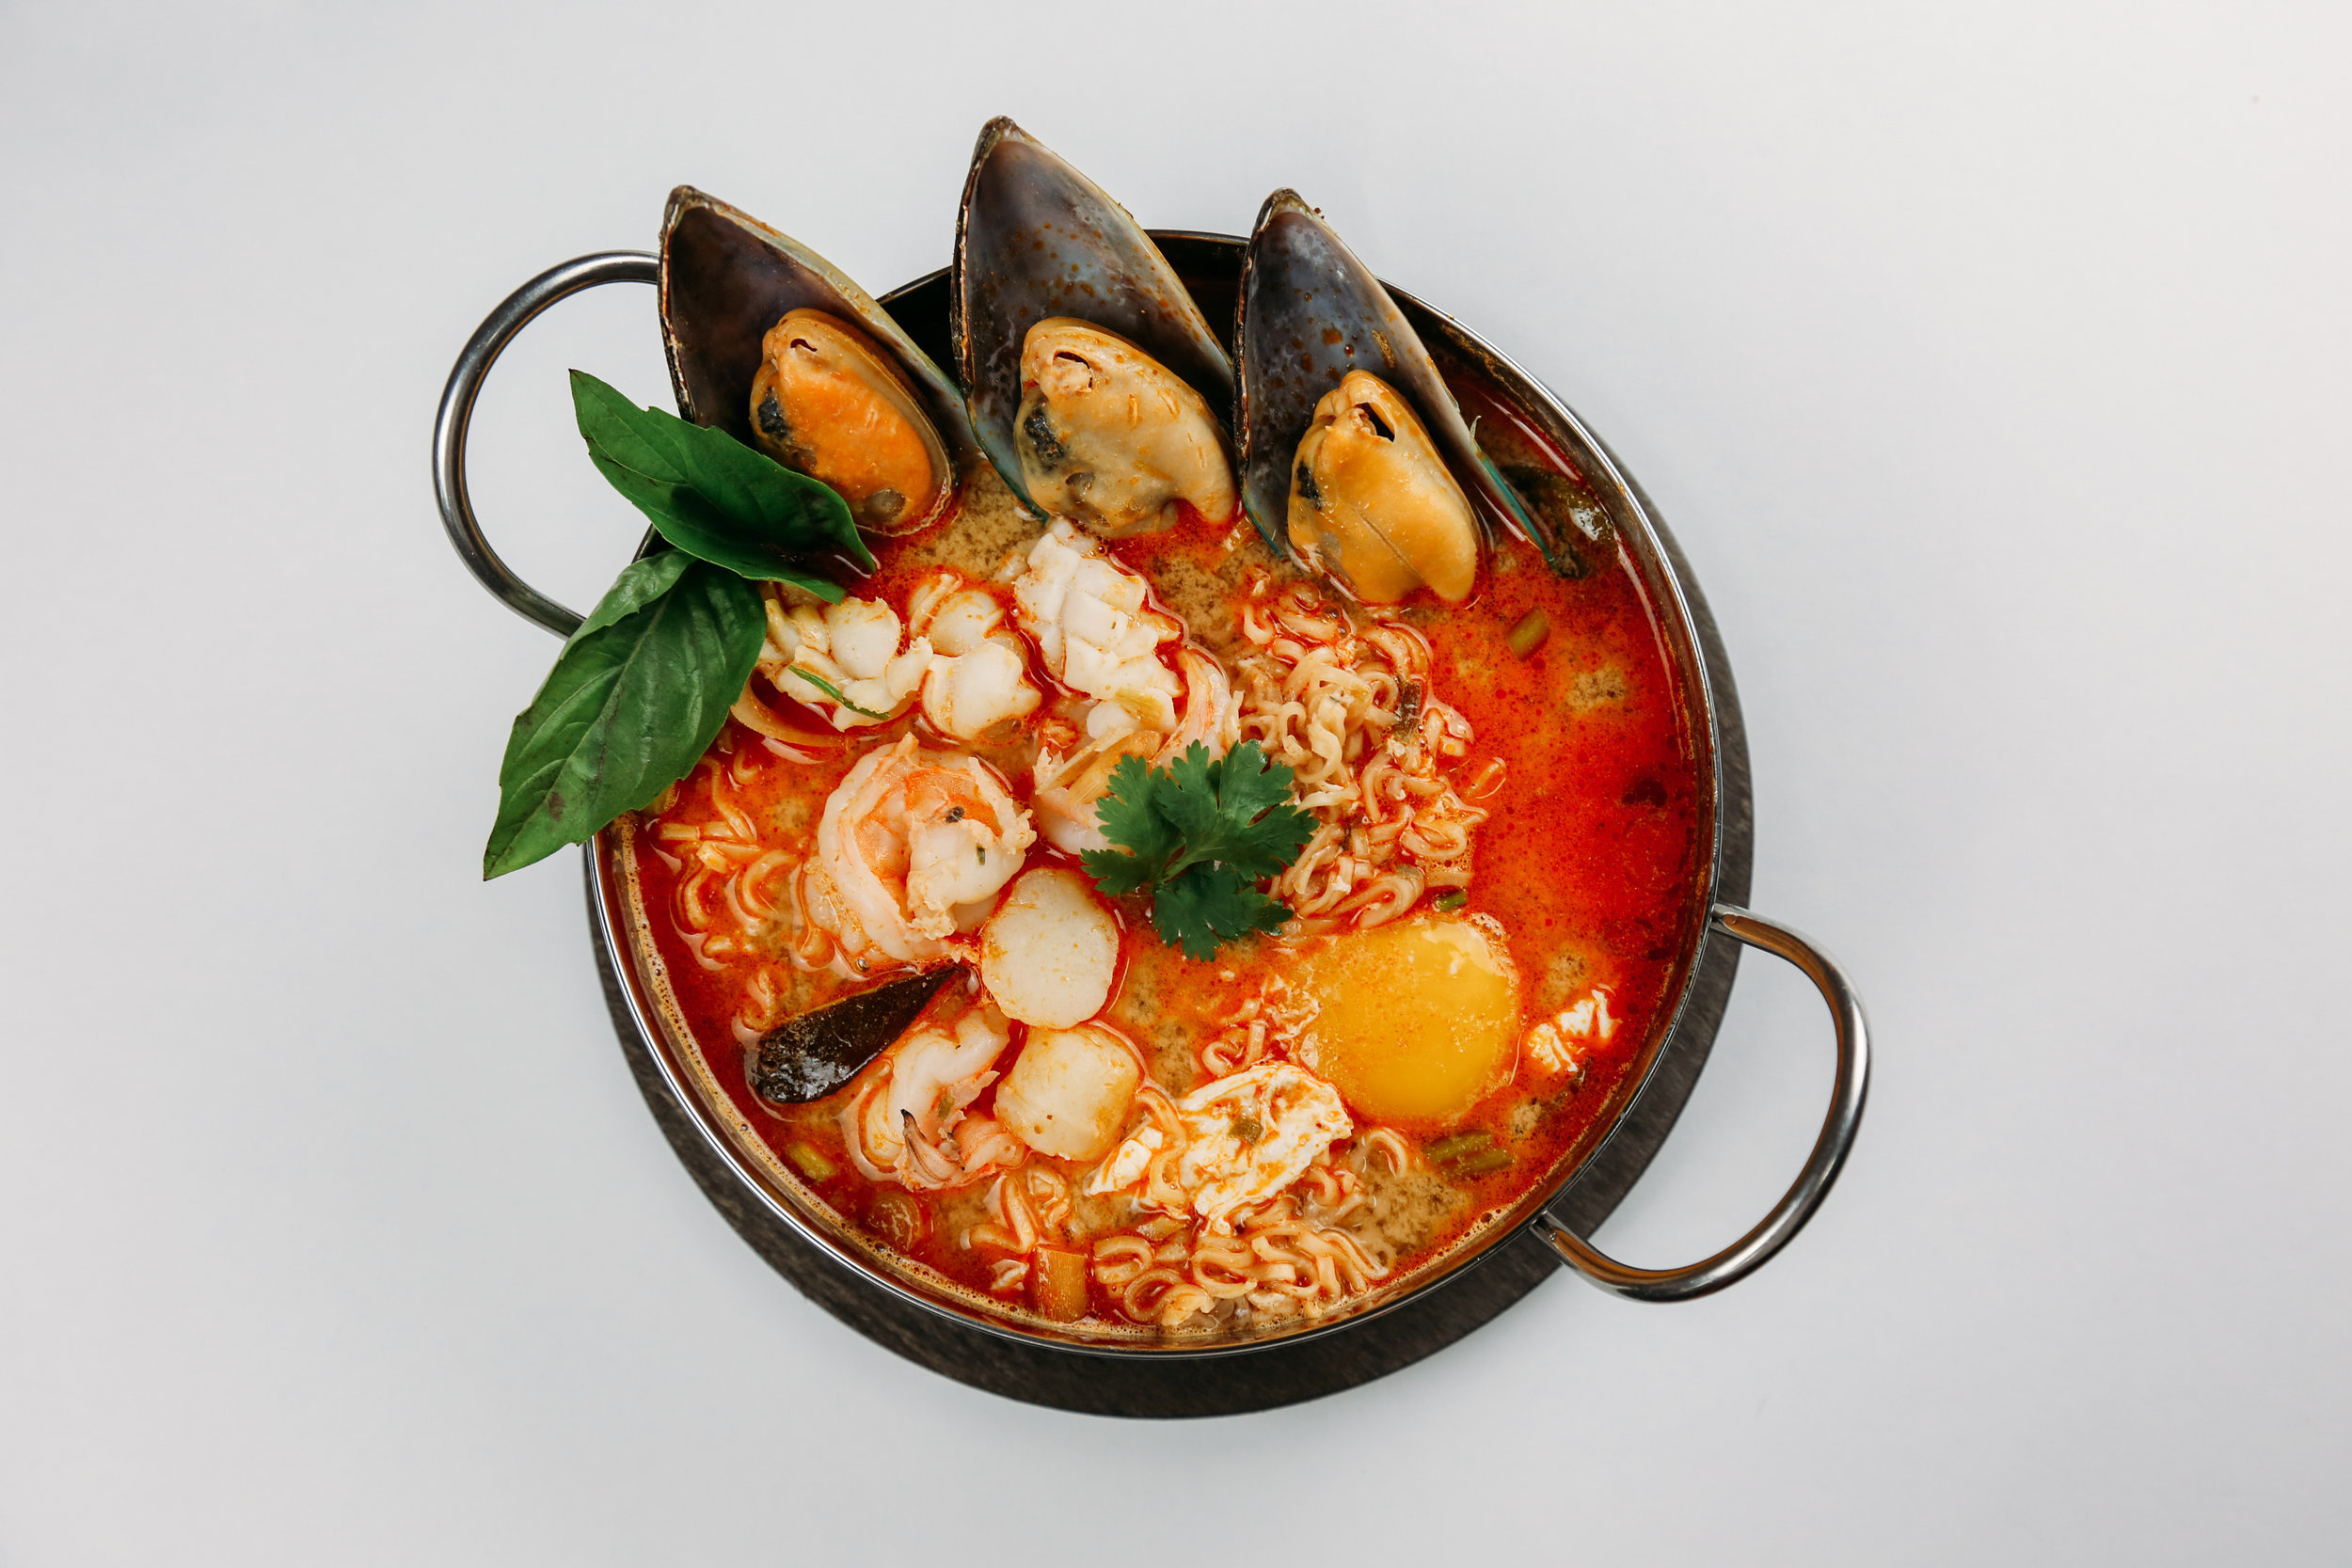 Tom Yum Noodle Soup - With scallion, chili, lemongrass,galanga,lime leaf in spicy Tom Yum brothtop with egg.